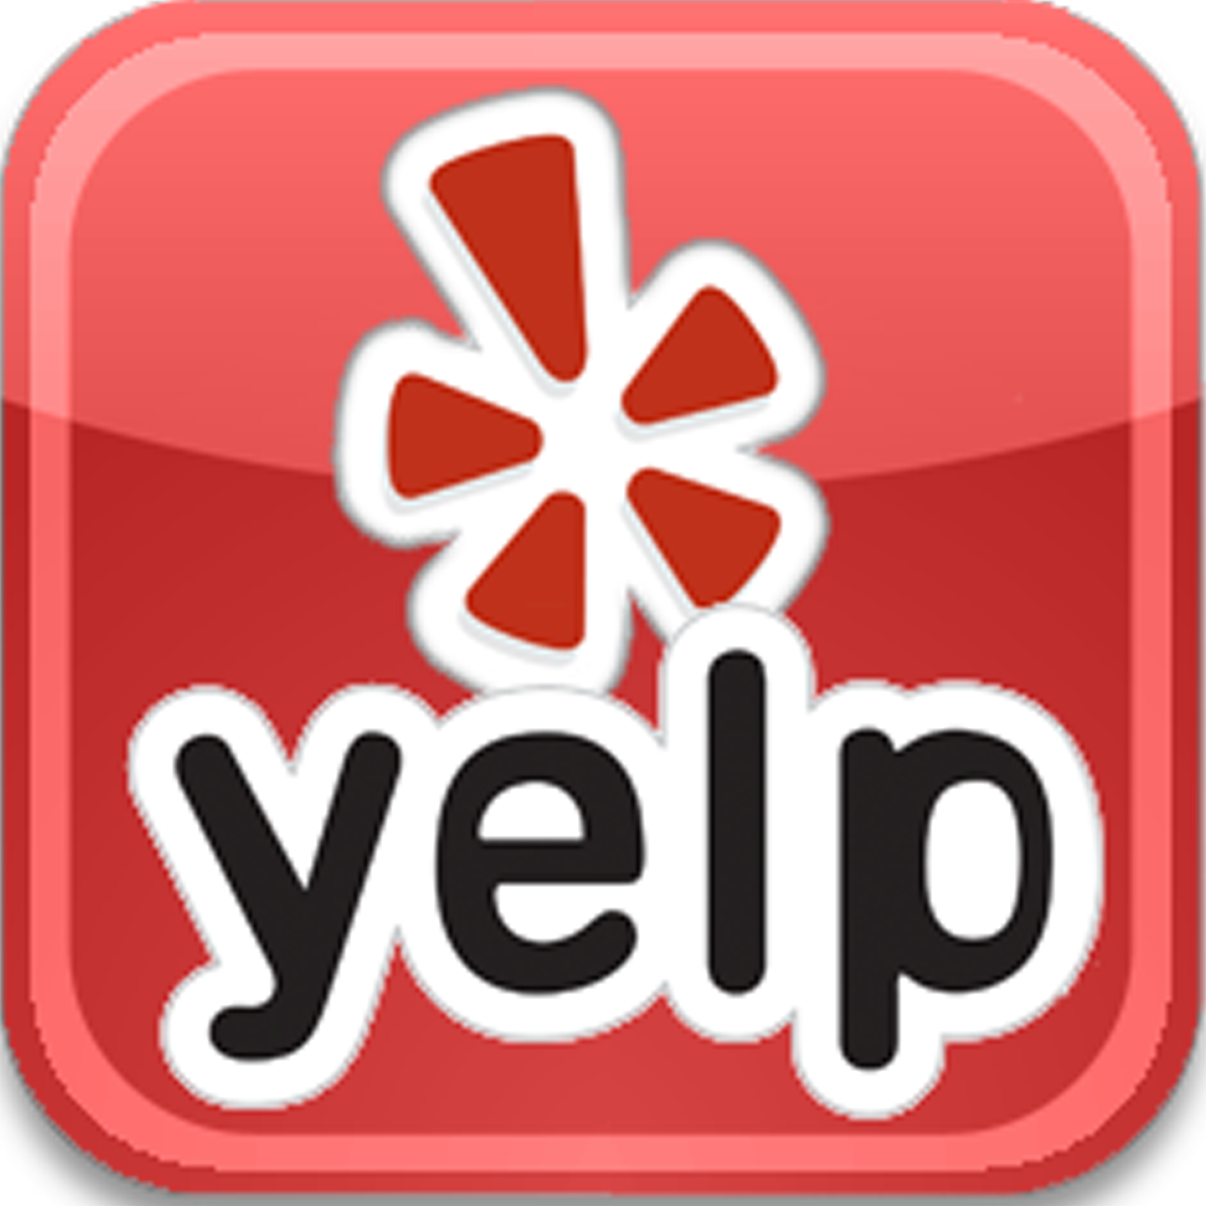 Yelp Icon Transparent Yelp Logo - Fre...